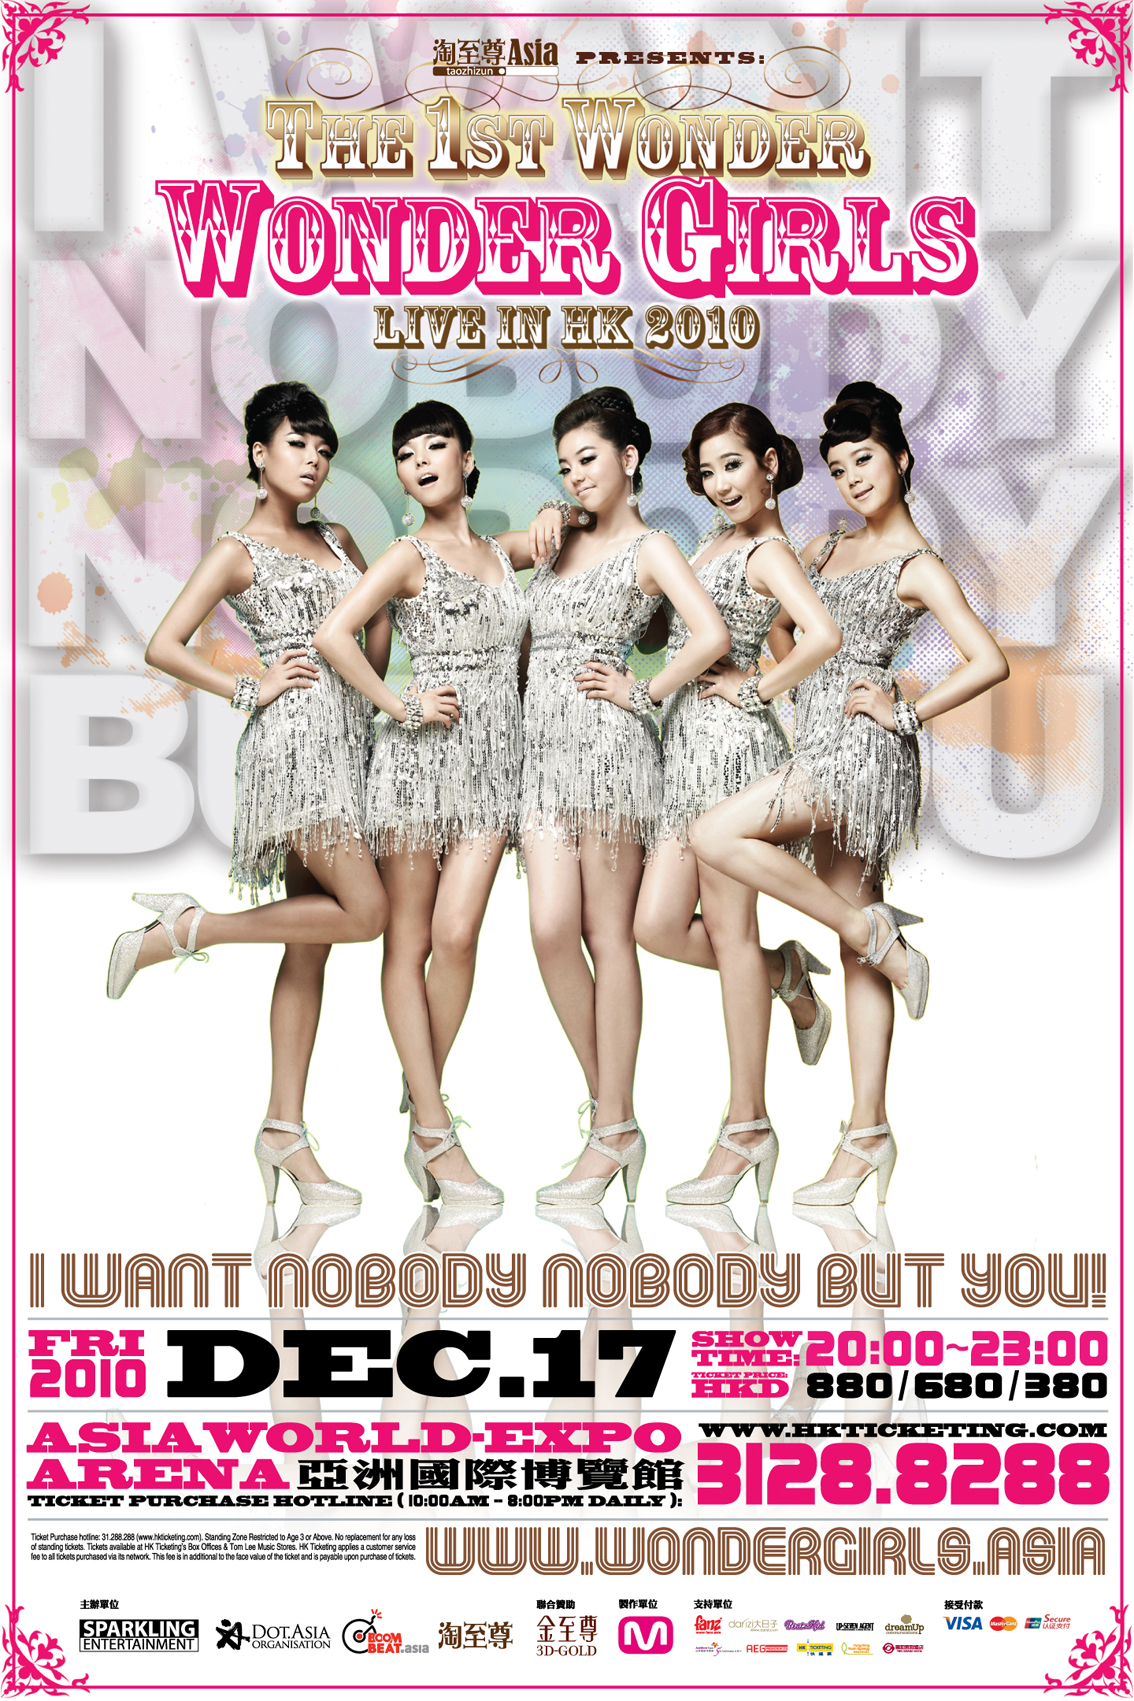 [preview]WG-Poster-20x30.jpg